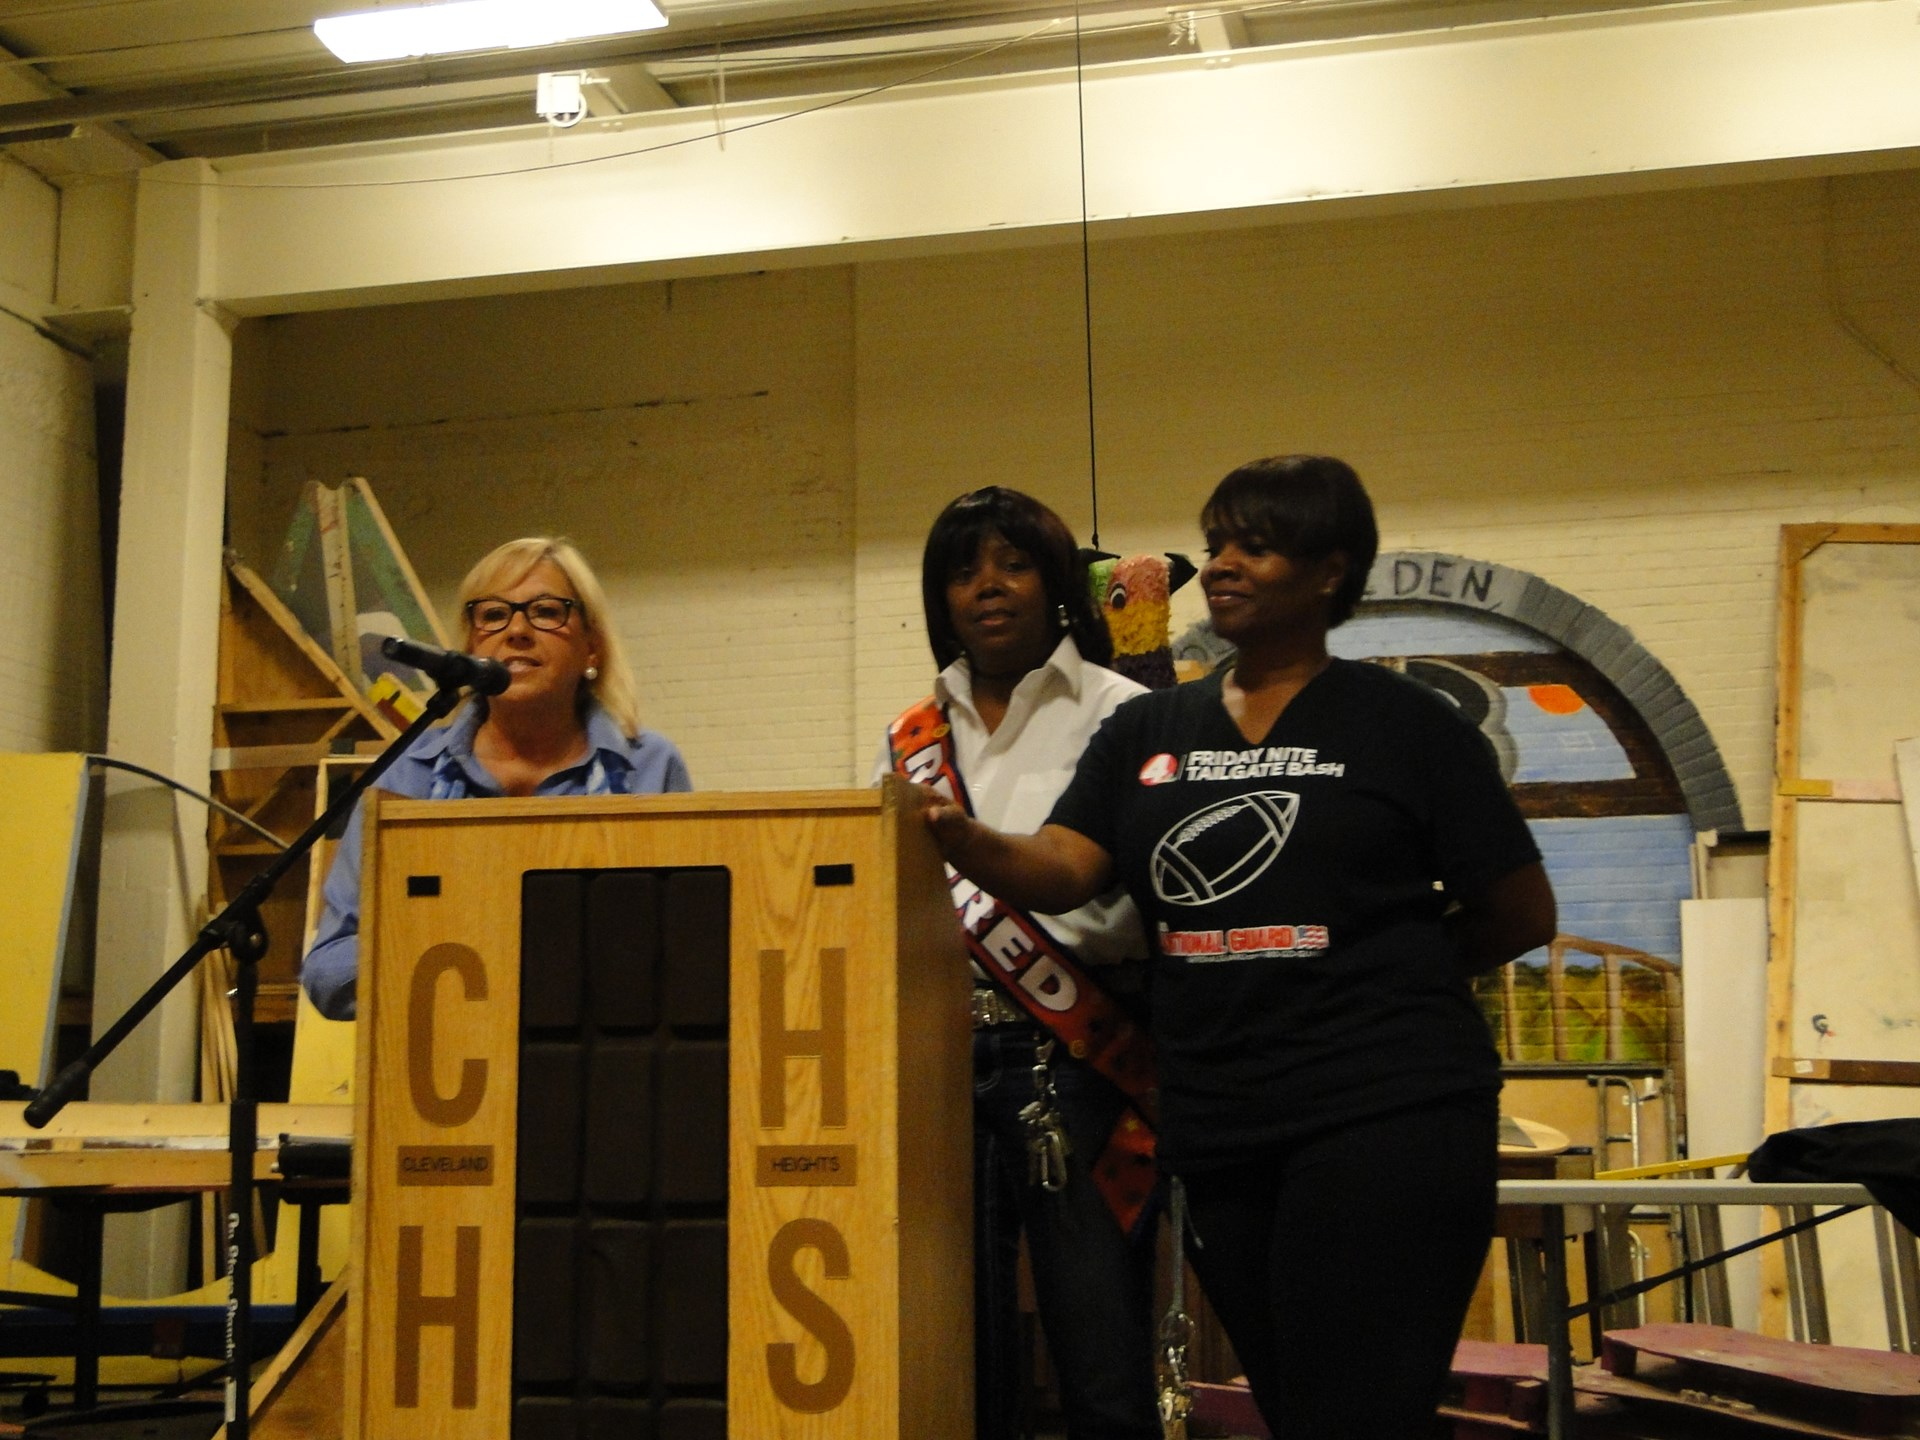 Retiring cleaners (and sisters) Coco & Annette Cooper recognized by Linda Spisak.